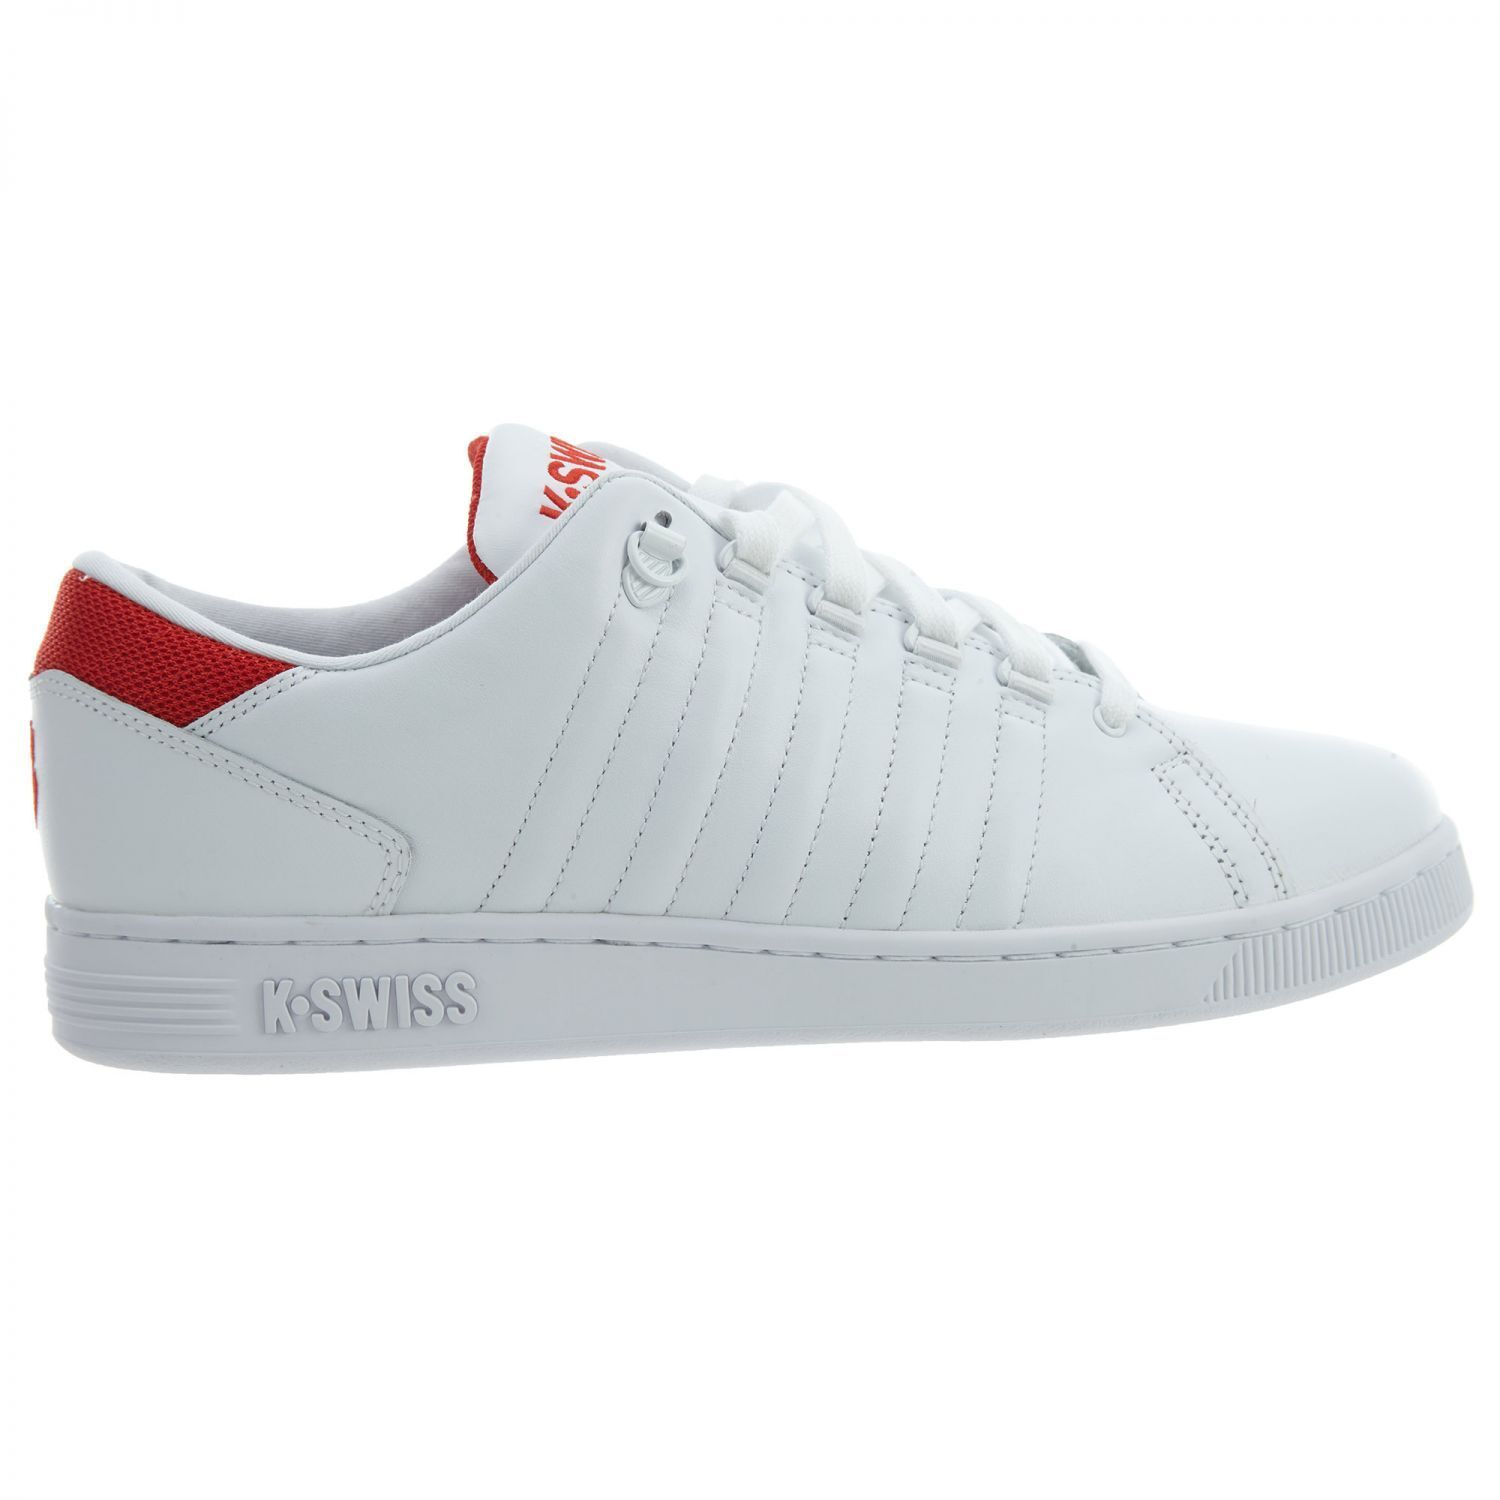 K-Swiss Lozan III TT Mens 05398-164 White Red Leather Athletic shoes Size 10